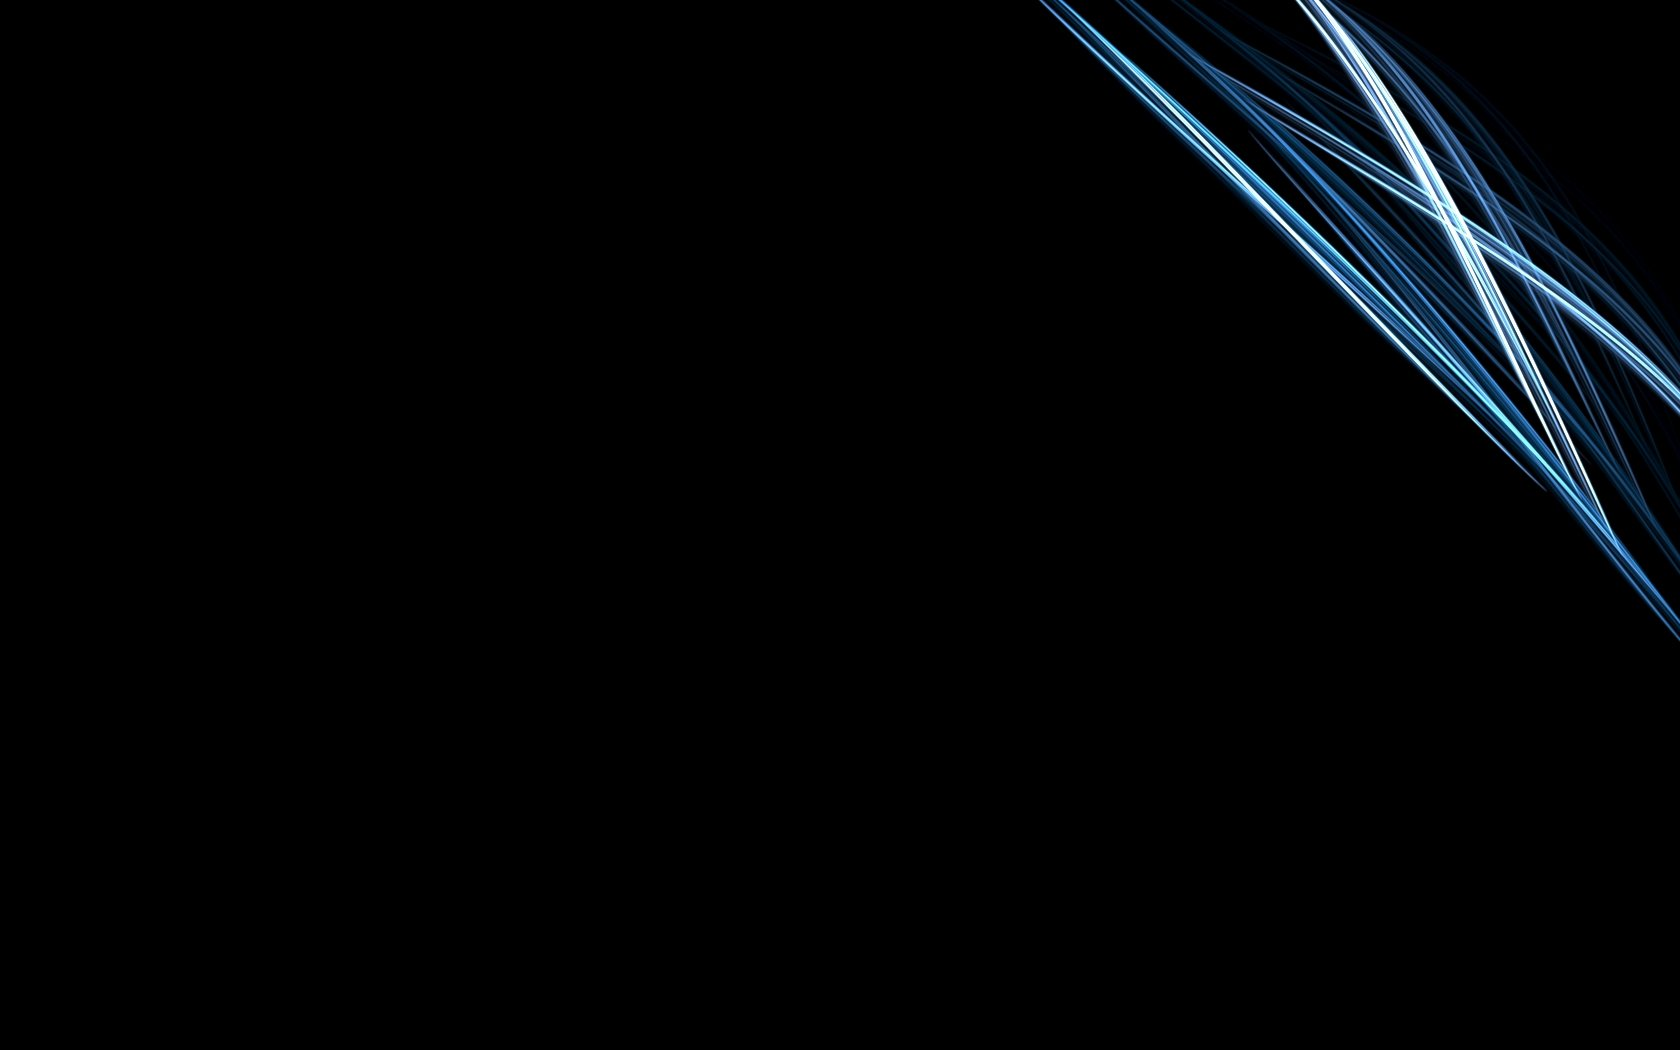 Black Blue Abstract Wallpaper 2026 Hd Wallpapers in Abstract 1680x1050